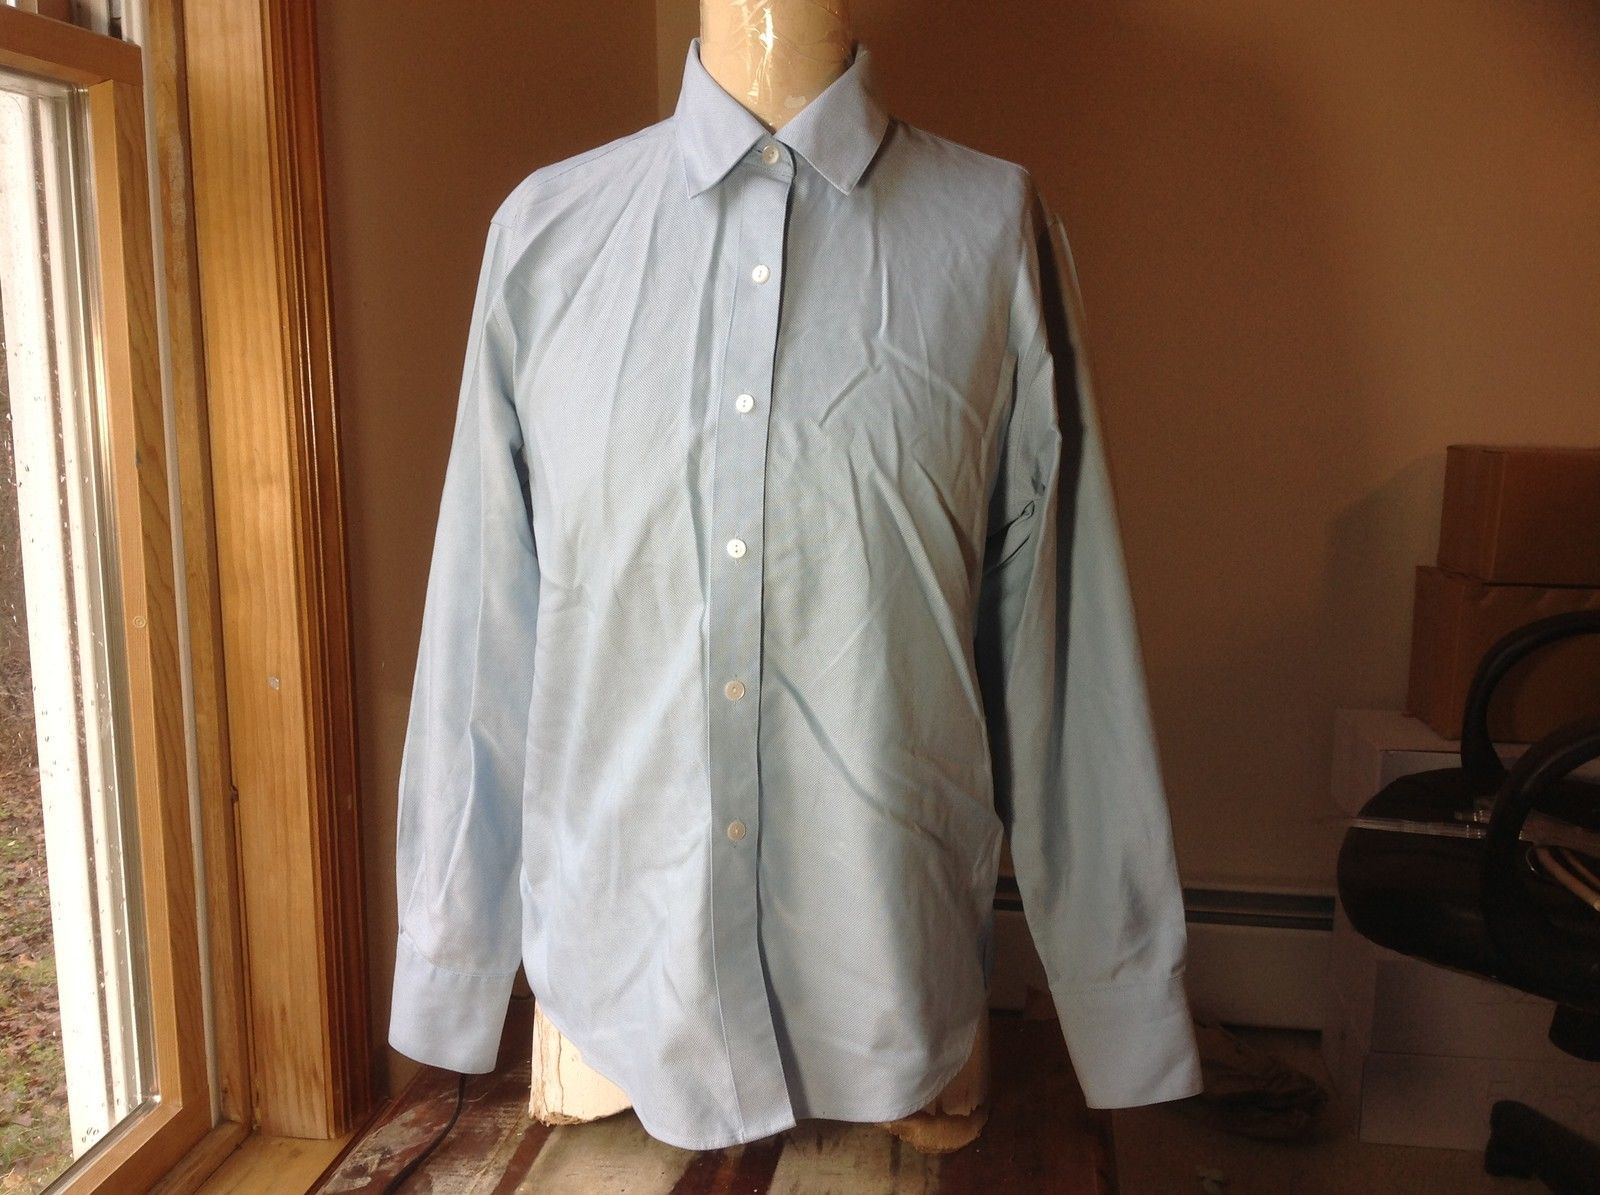 Talbots Long Sleeve Light Blue Button Up Dress Shirt Size 6